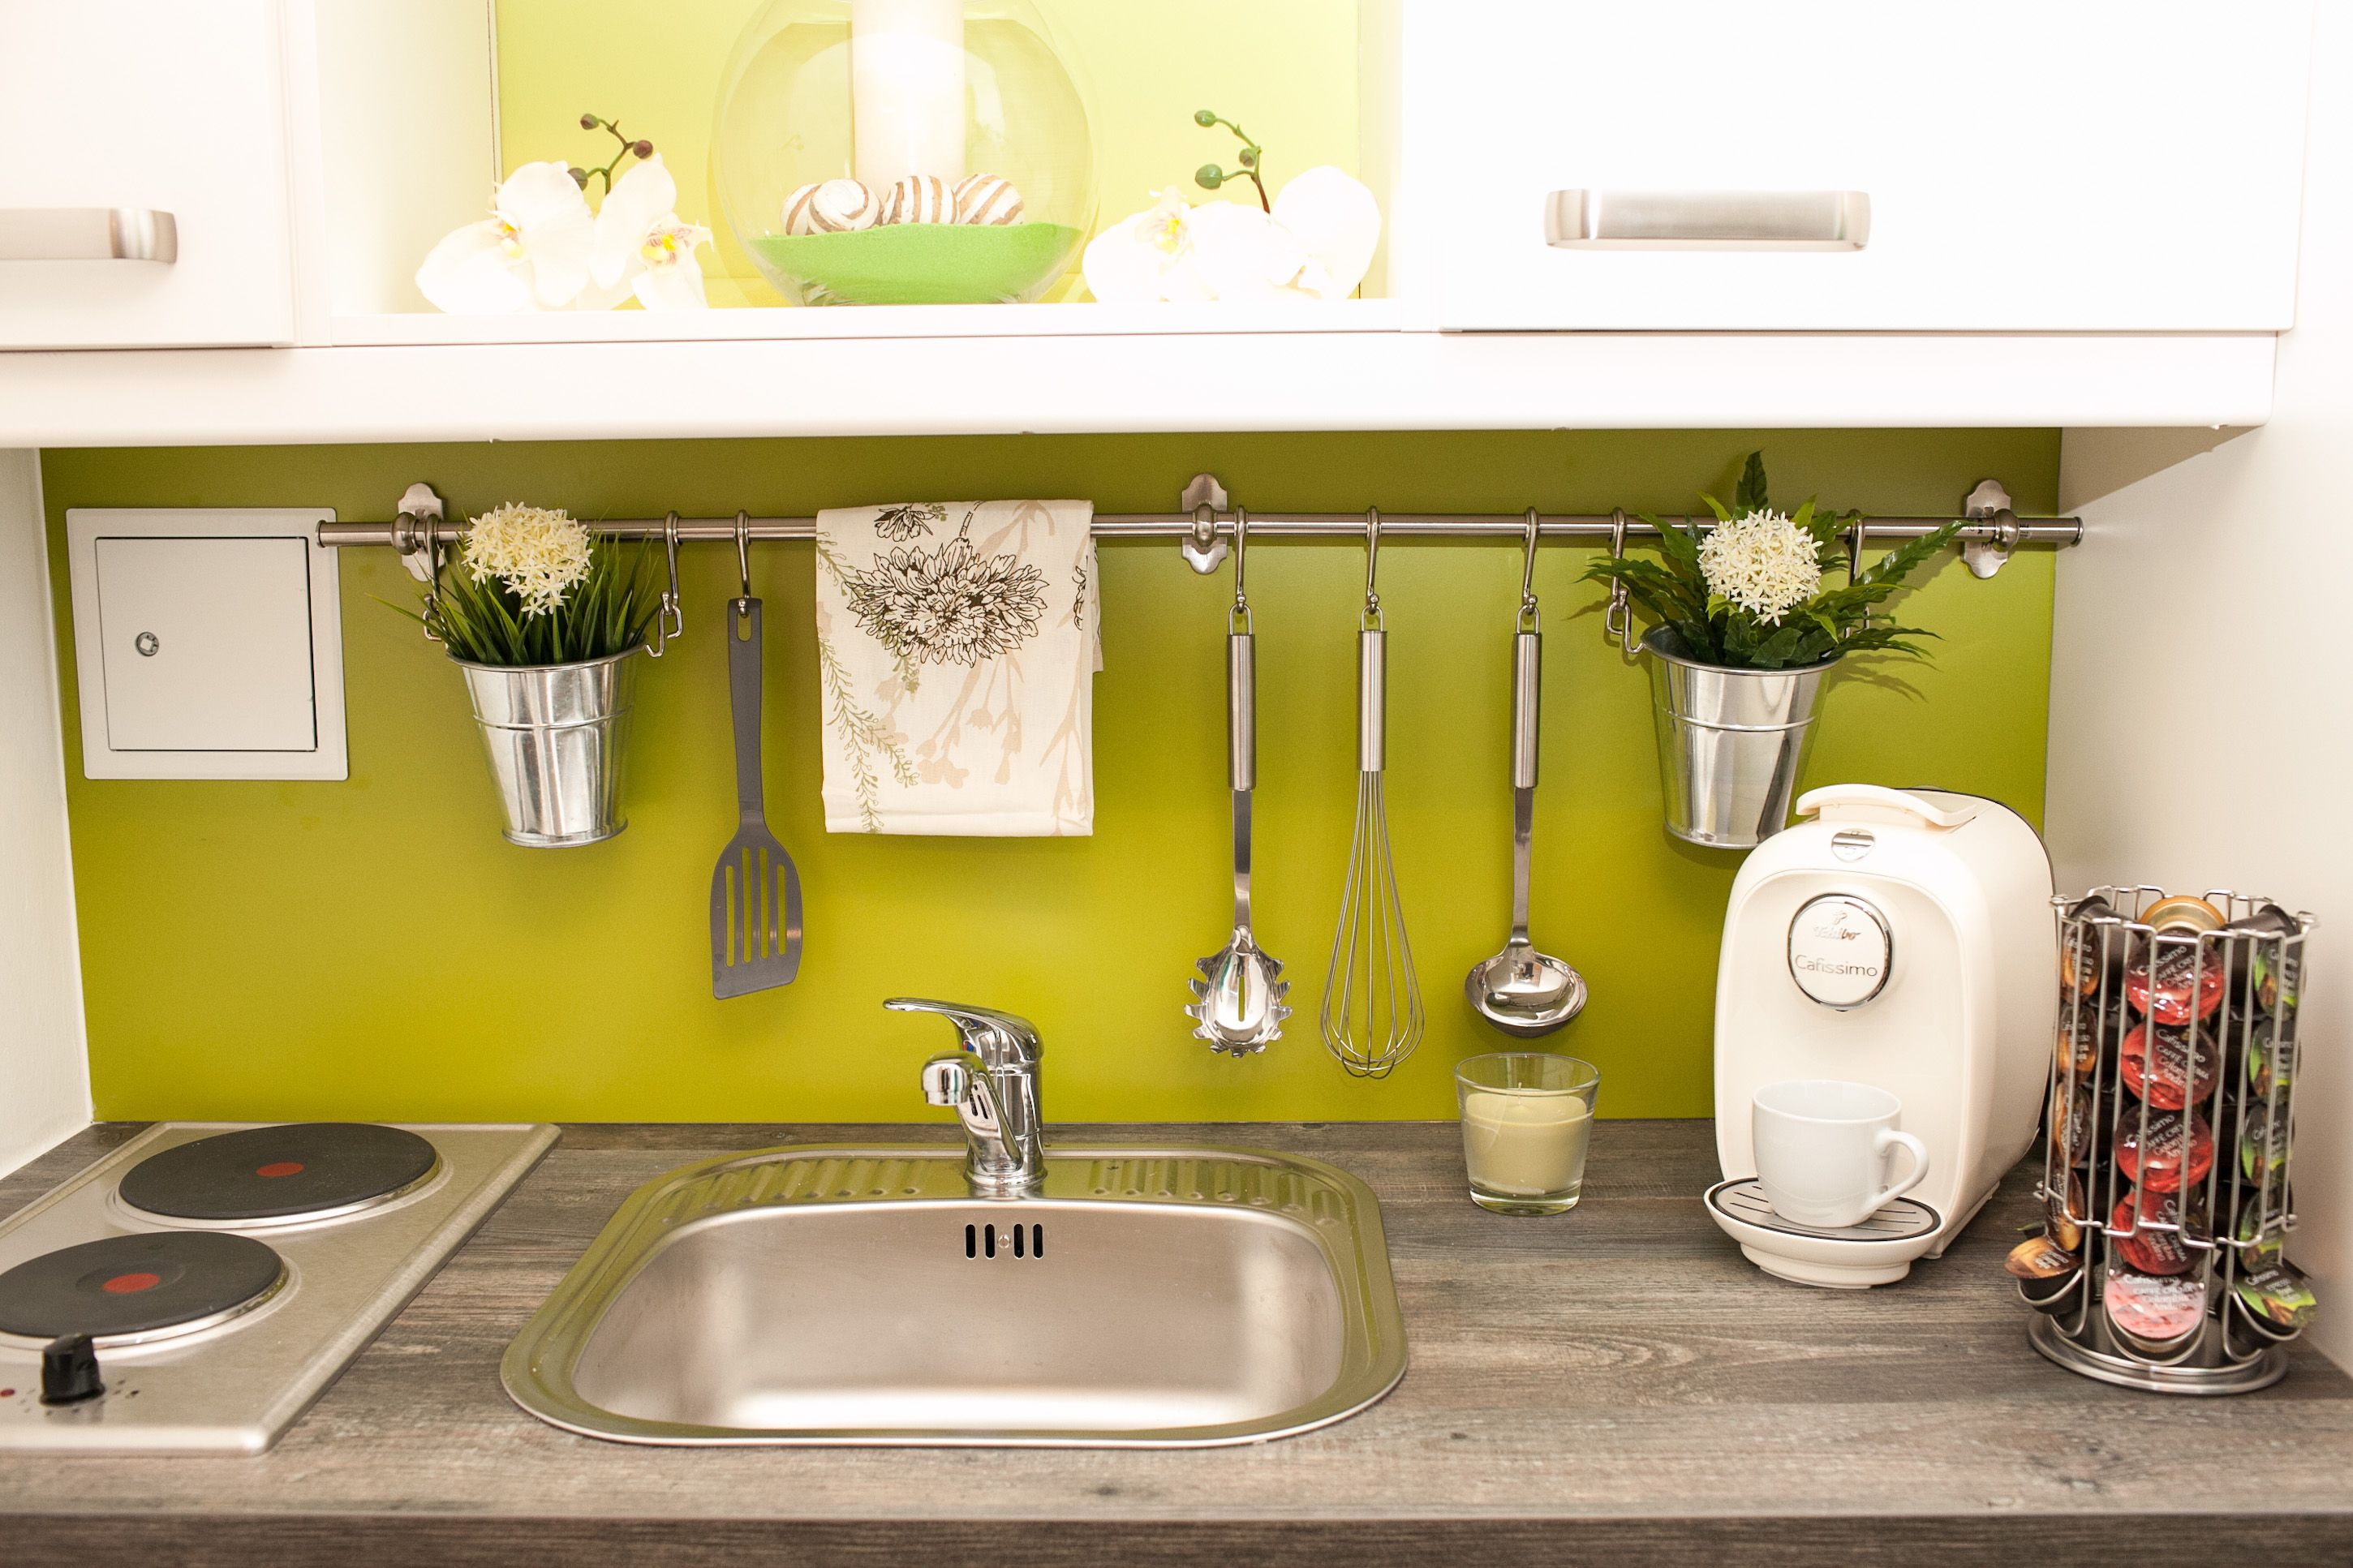 small kitchen idea #cute #green #flowers | Apartment LIFESTYLE ...